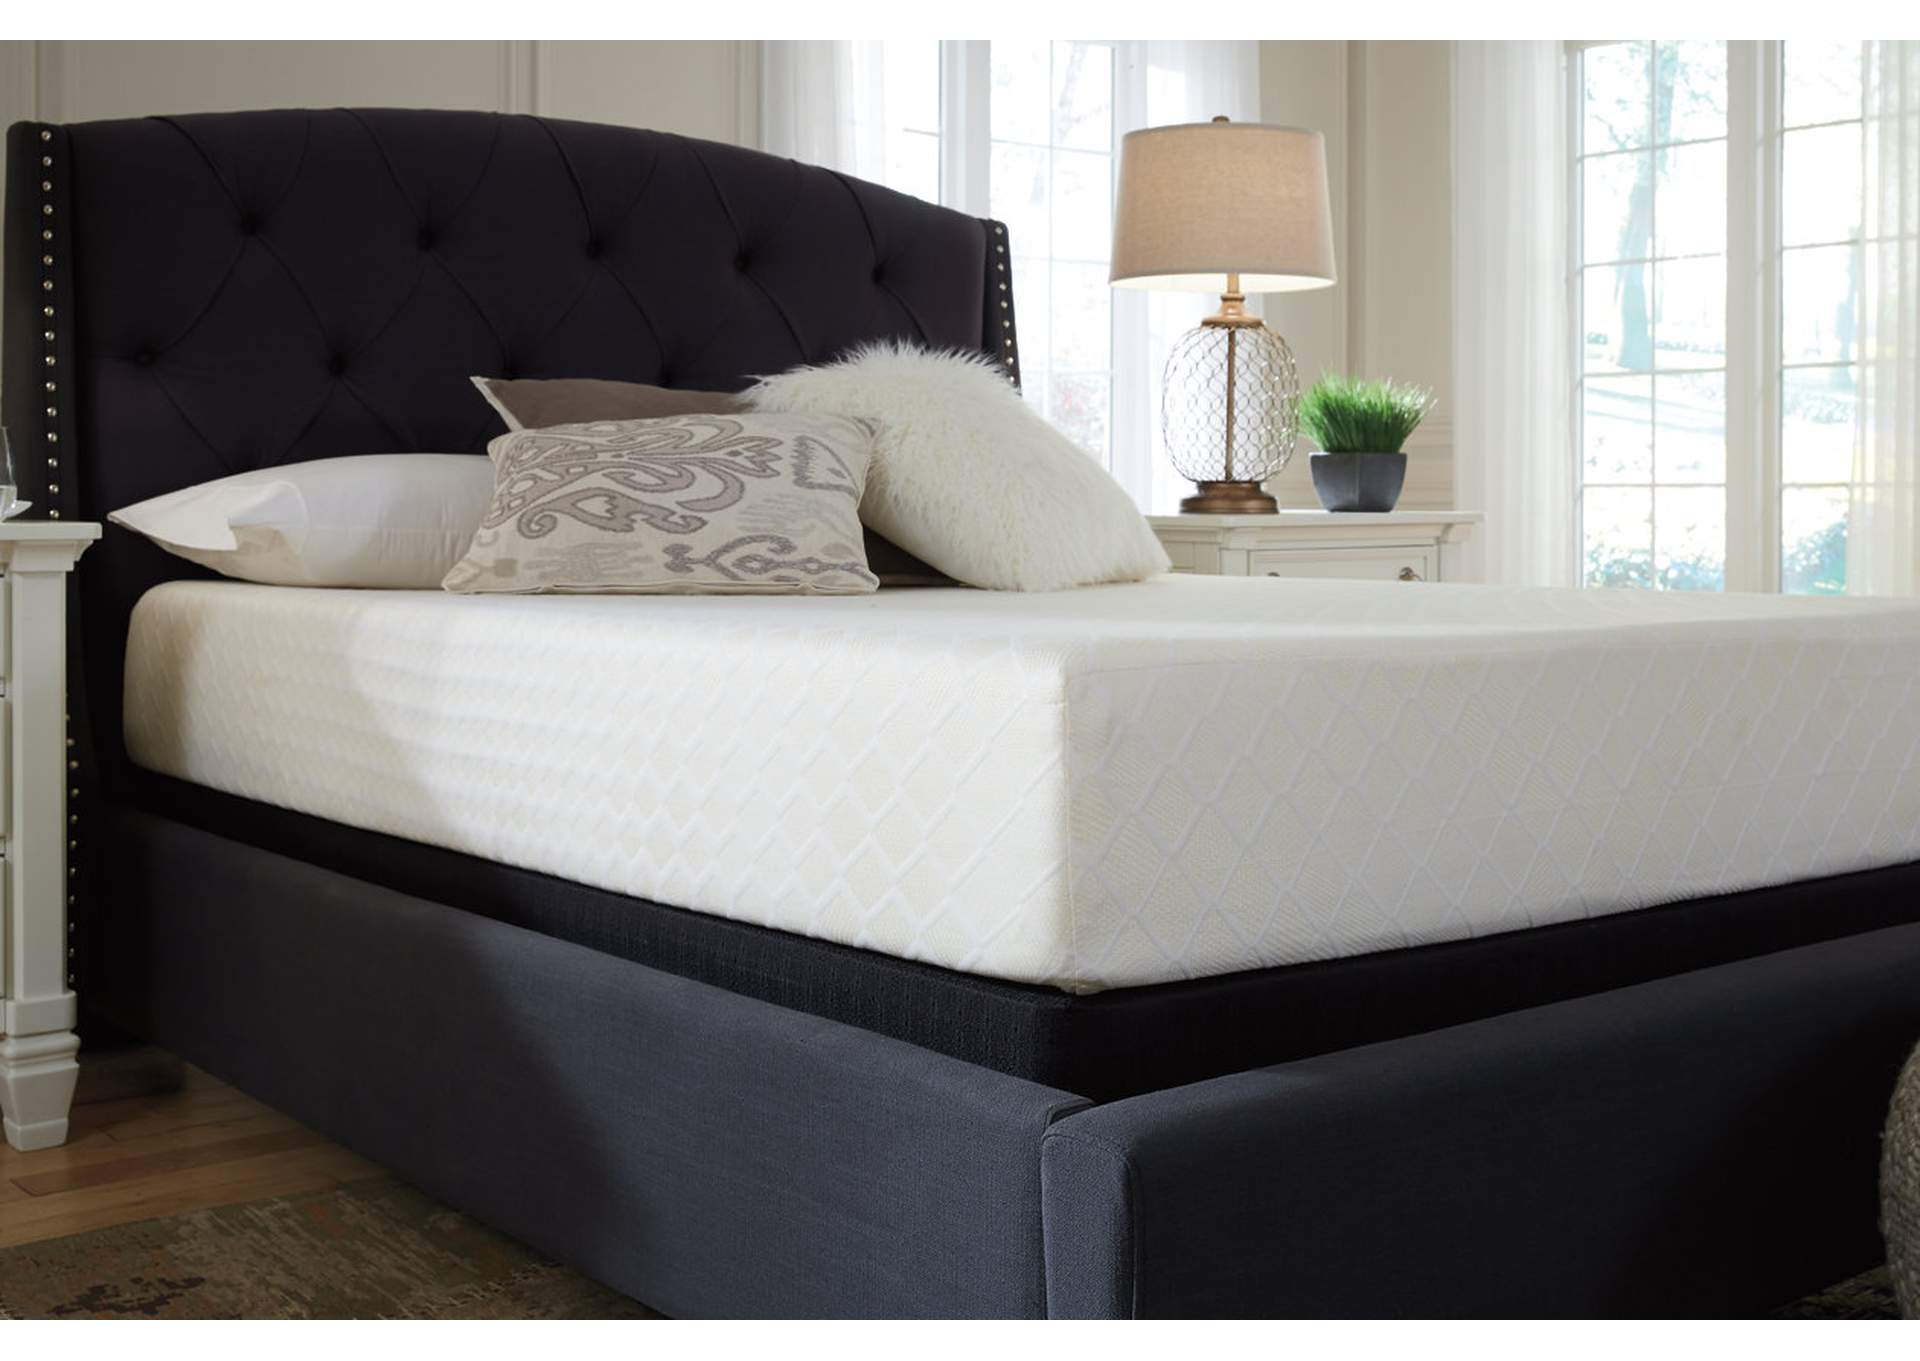 10 Inch Chime Memory Foam King Mattress in a Box,Sierra Sleep by Ashley